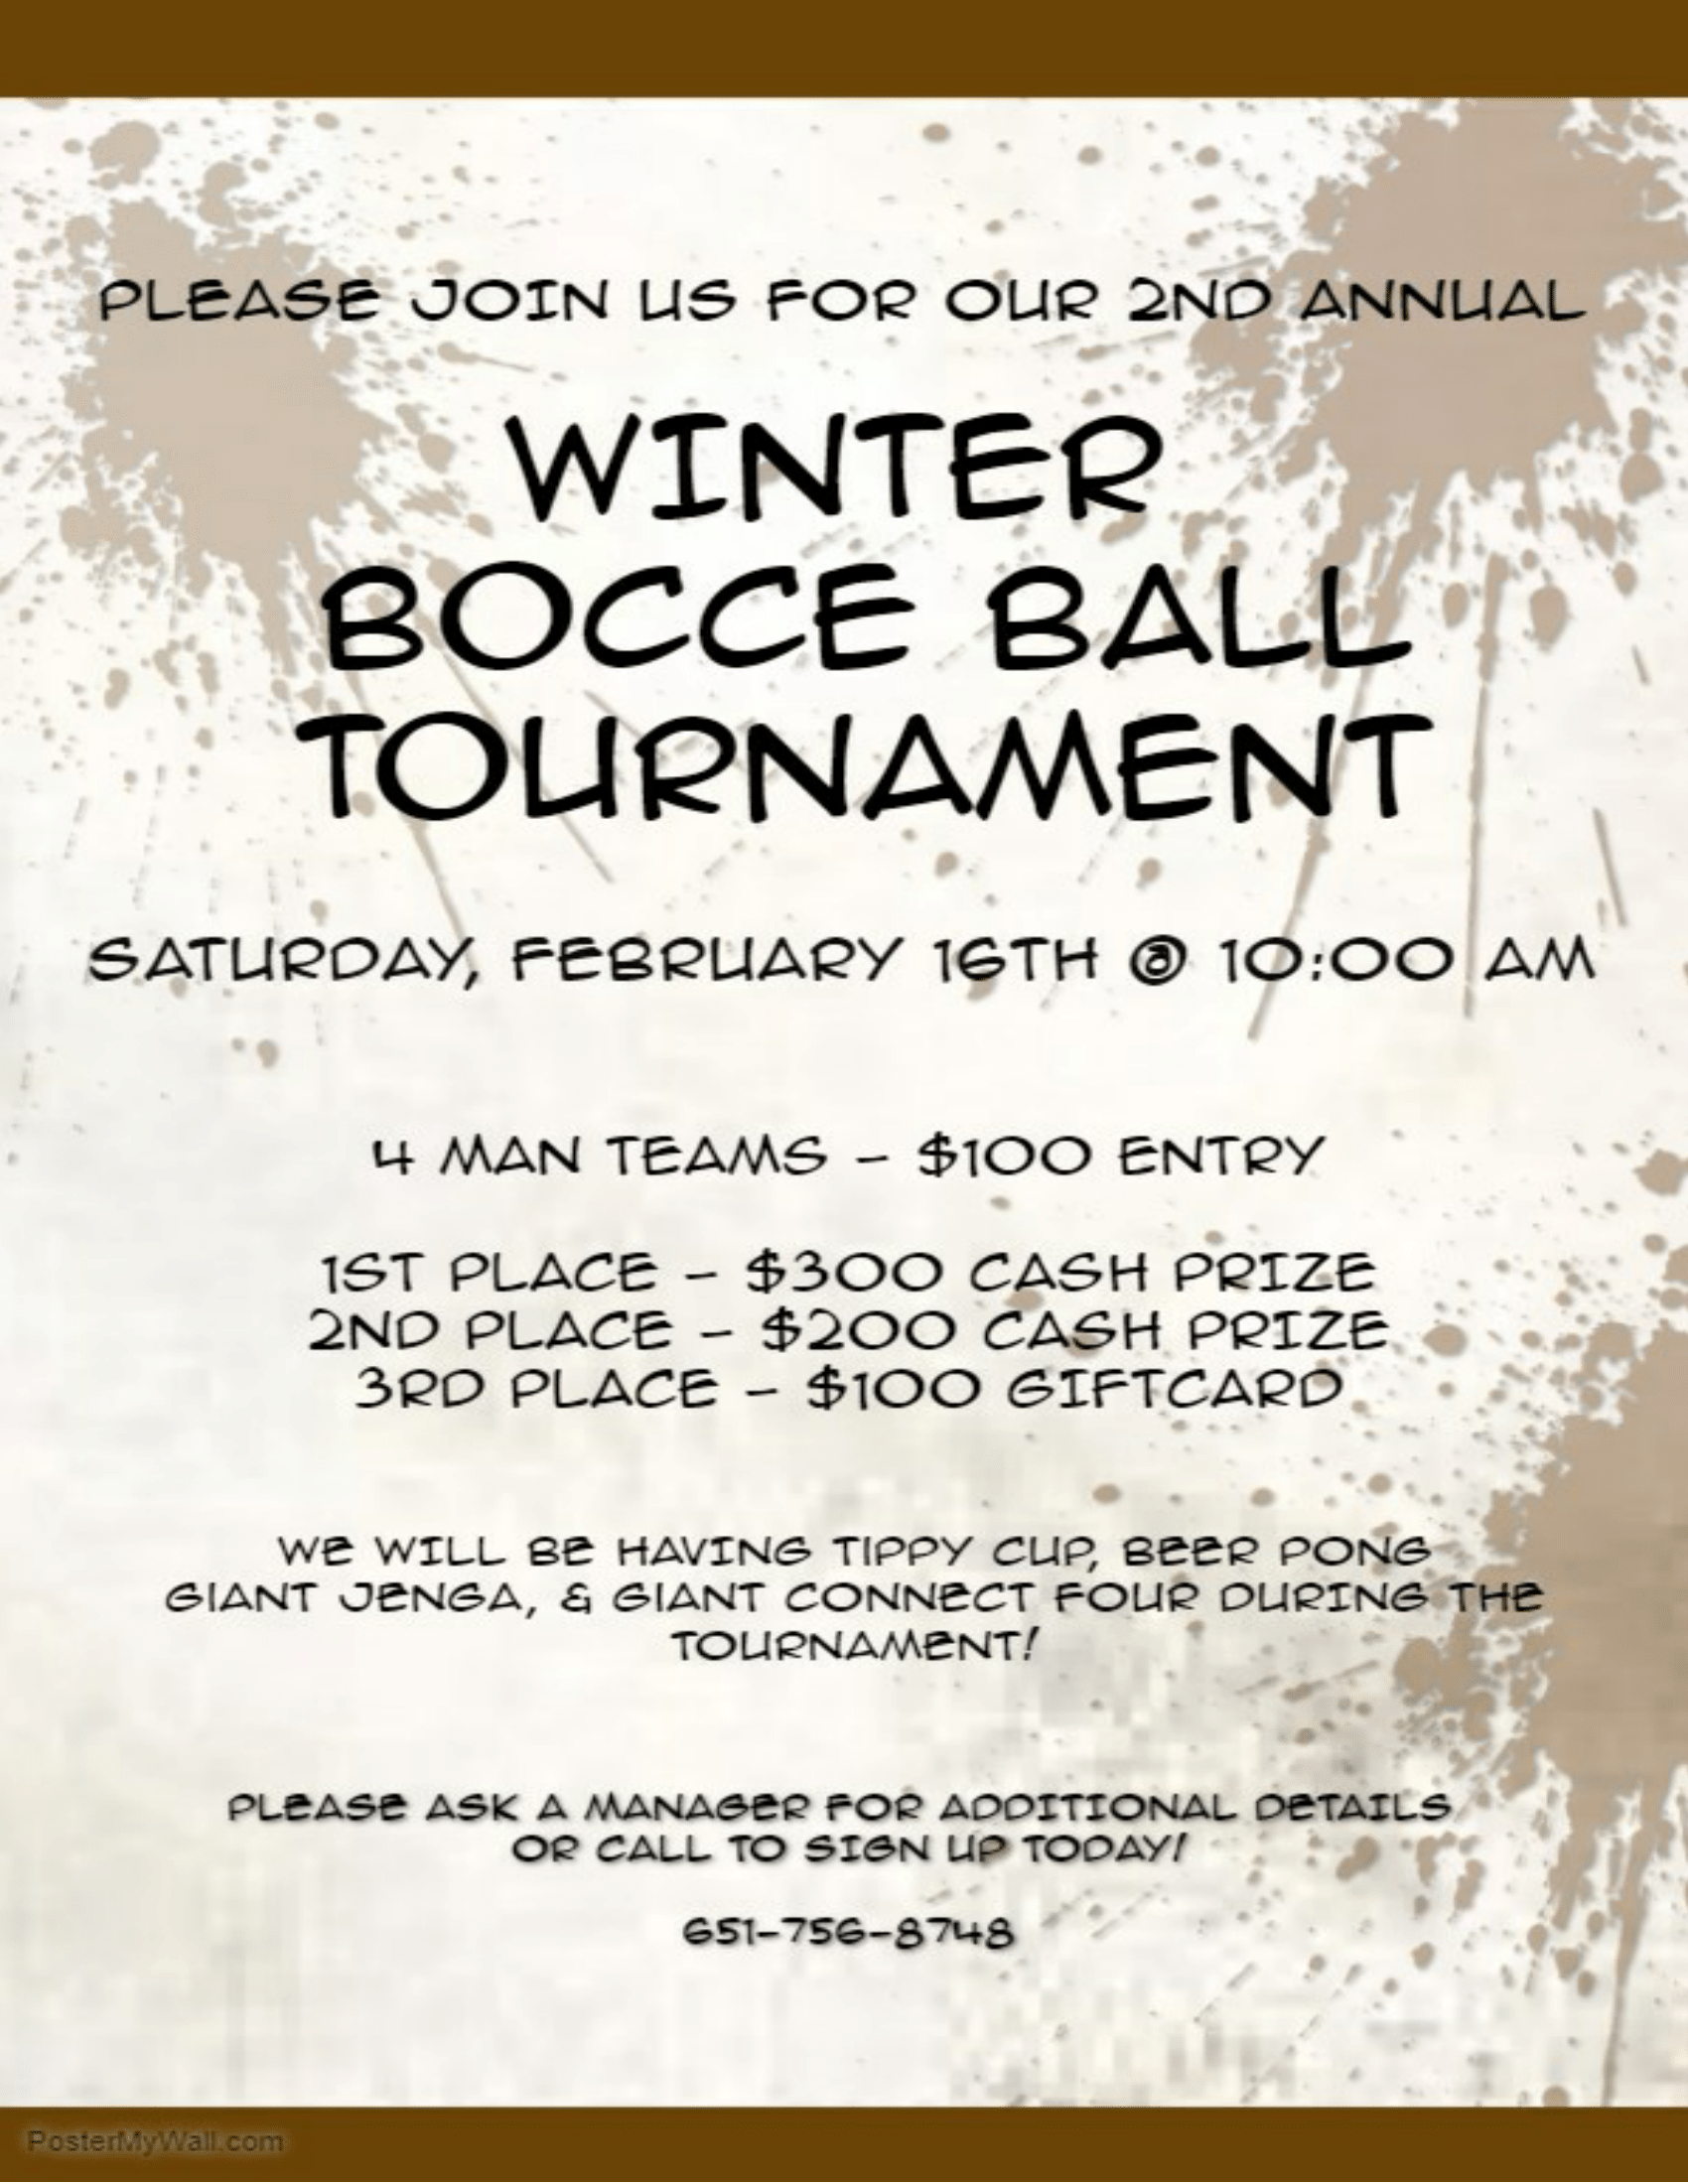 Please Join Us For Our 2nd Annual Winter Bocce Ball Tournament- Saturday, February 16th @ 10:00 AM 4 Man Teams - $100 Entry - 1st Place - $300 Cash Prize, 2nd Place- $200 Cash Prize, 3rd Place - $100 Gift Card. We will be having tippy cup, beer pong, giant jenga, & Giant Connect four during the tournament. Please ask a manager for additional details or call to sign up today! 651-756-8748